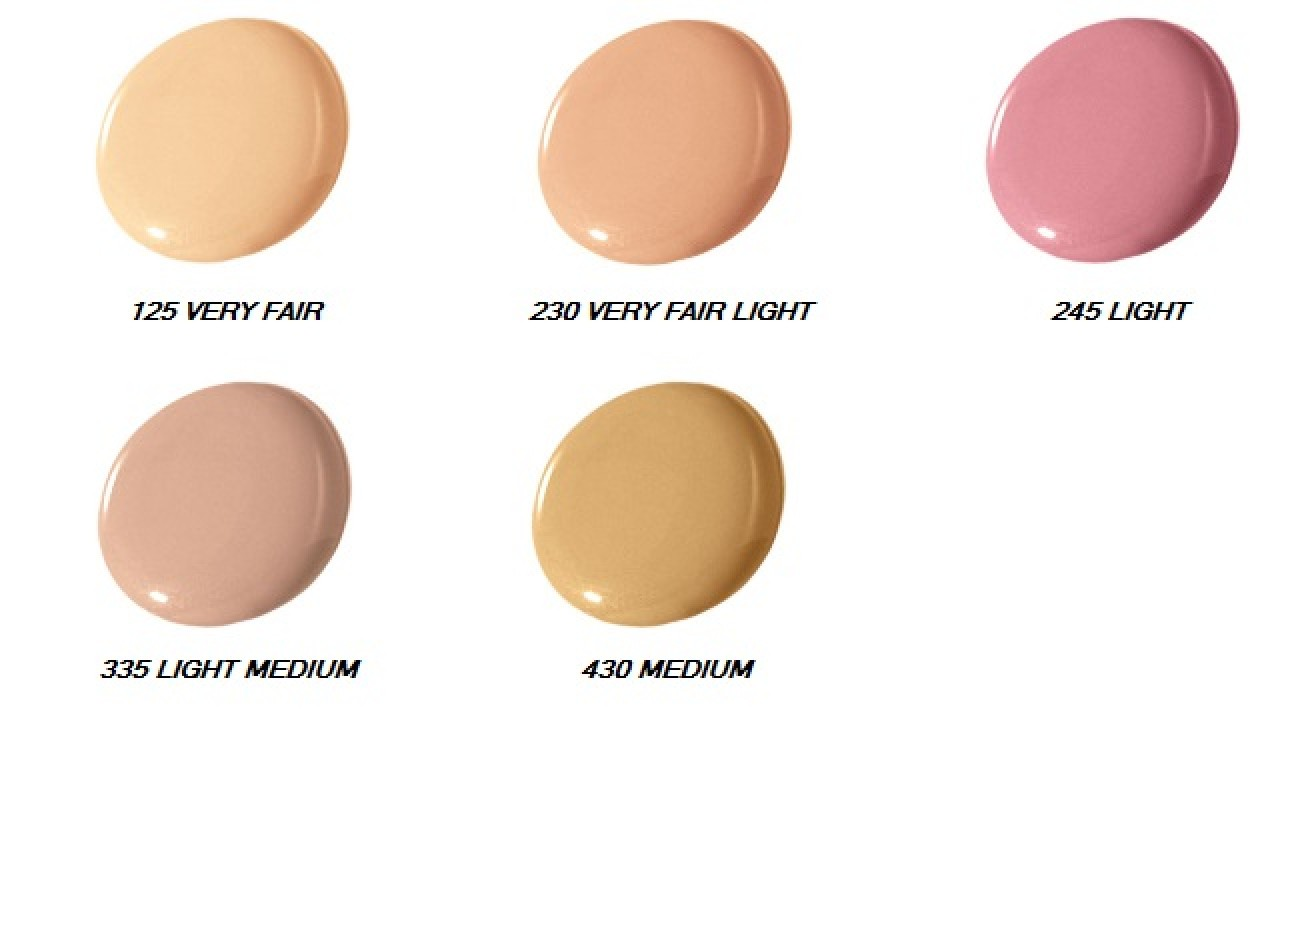 how to find concealer match